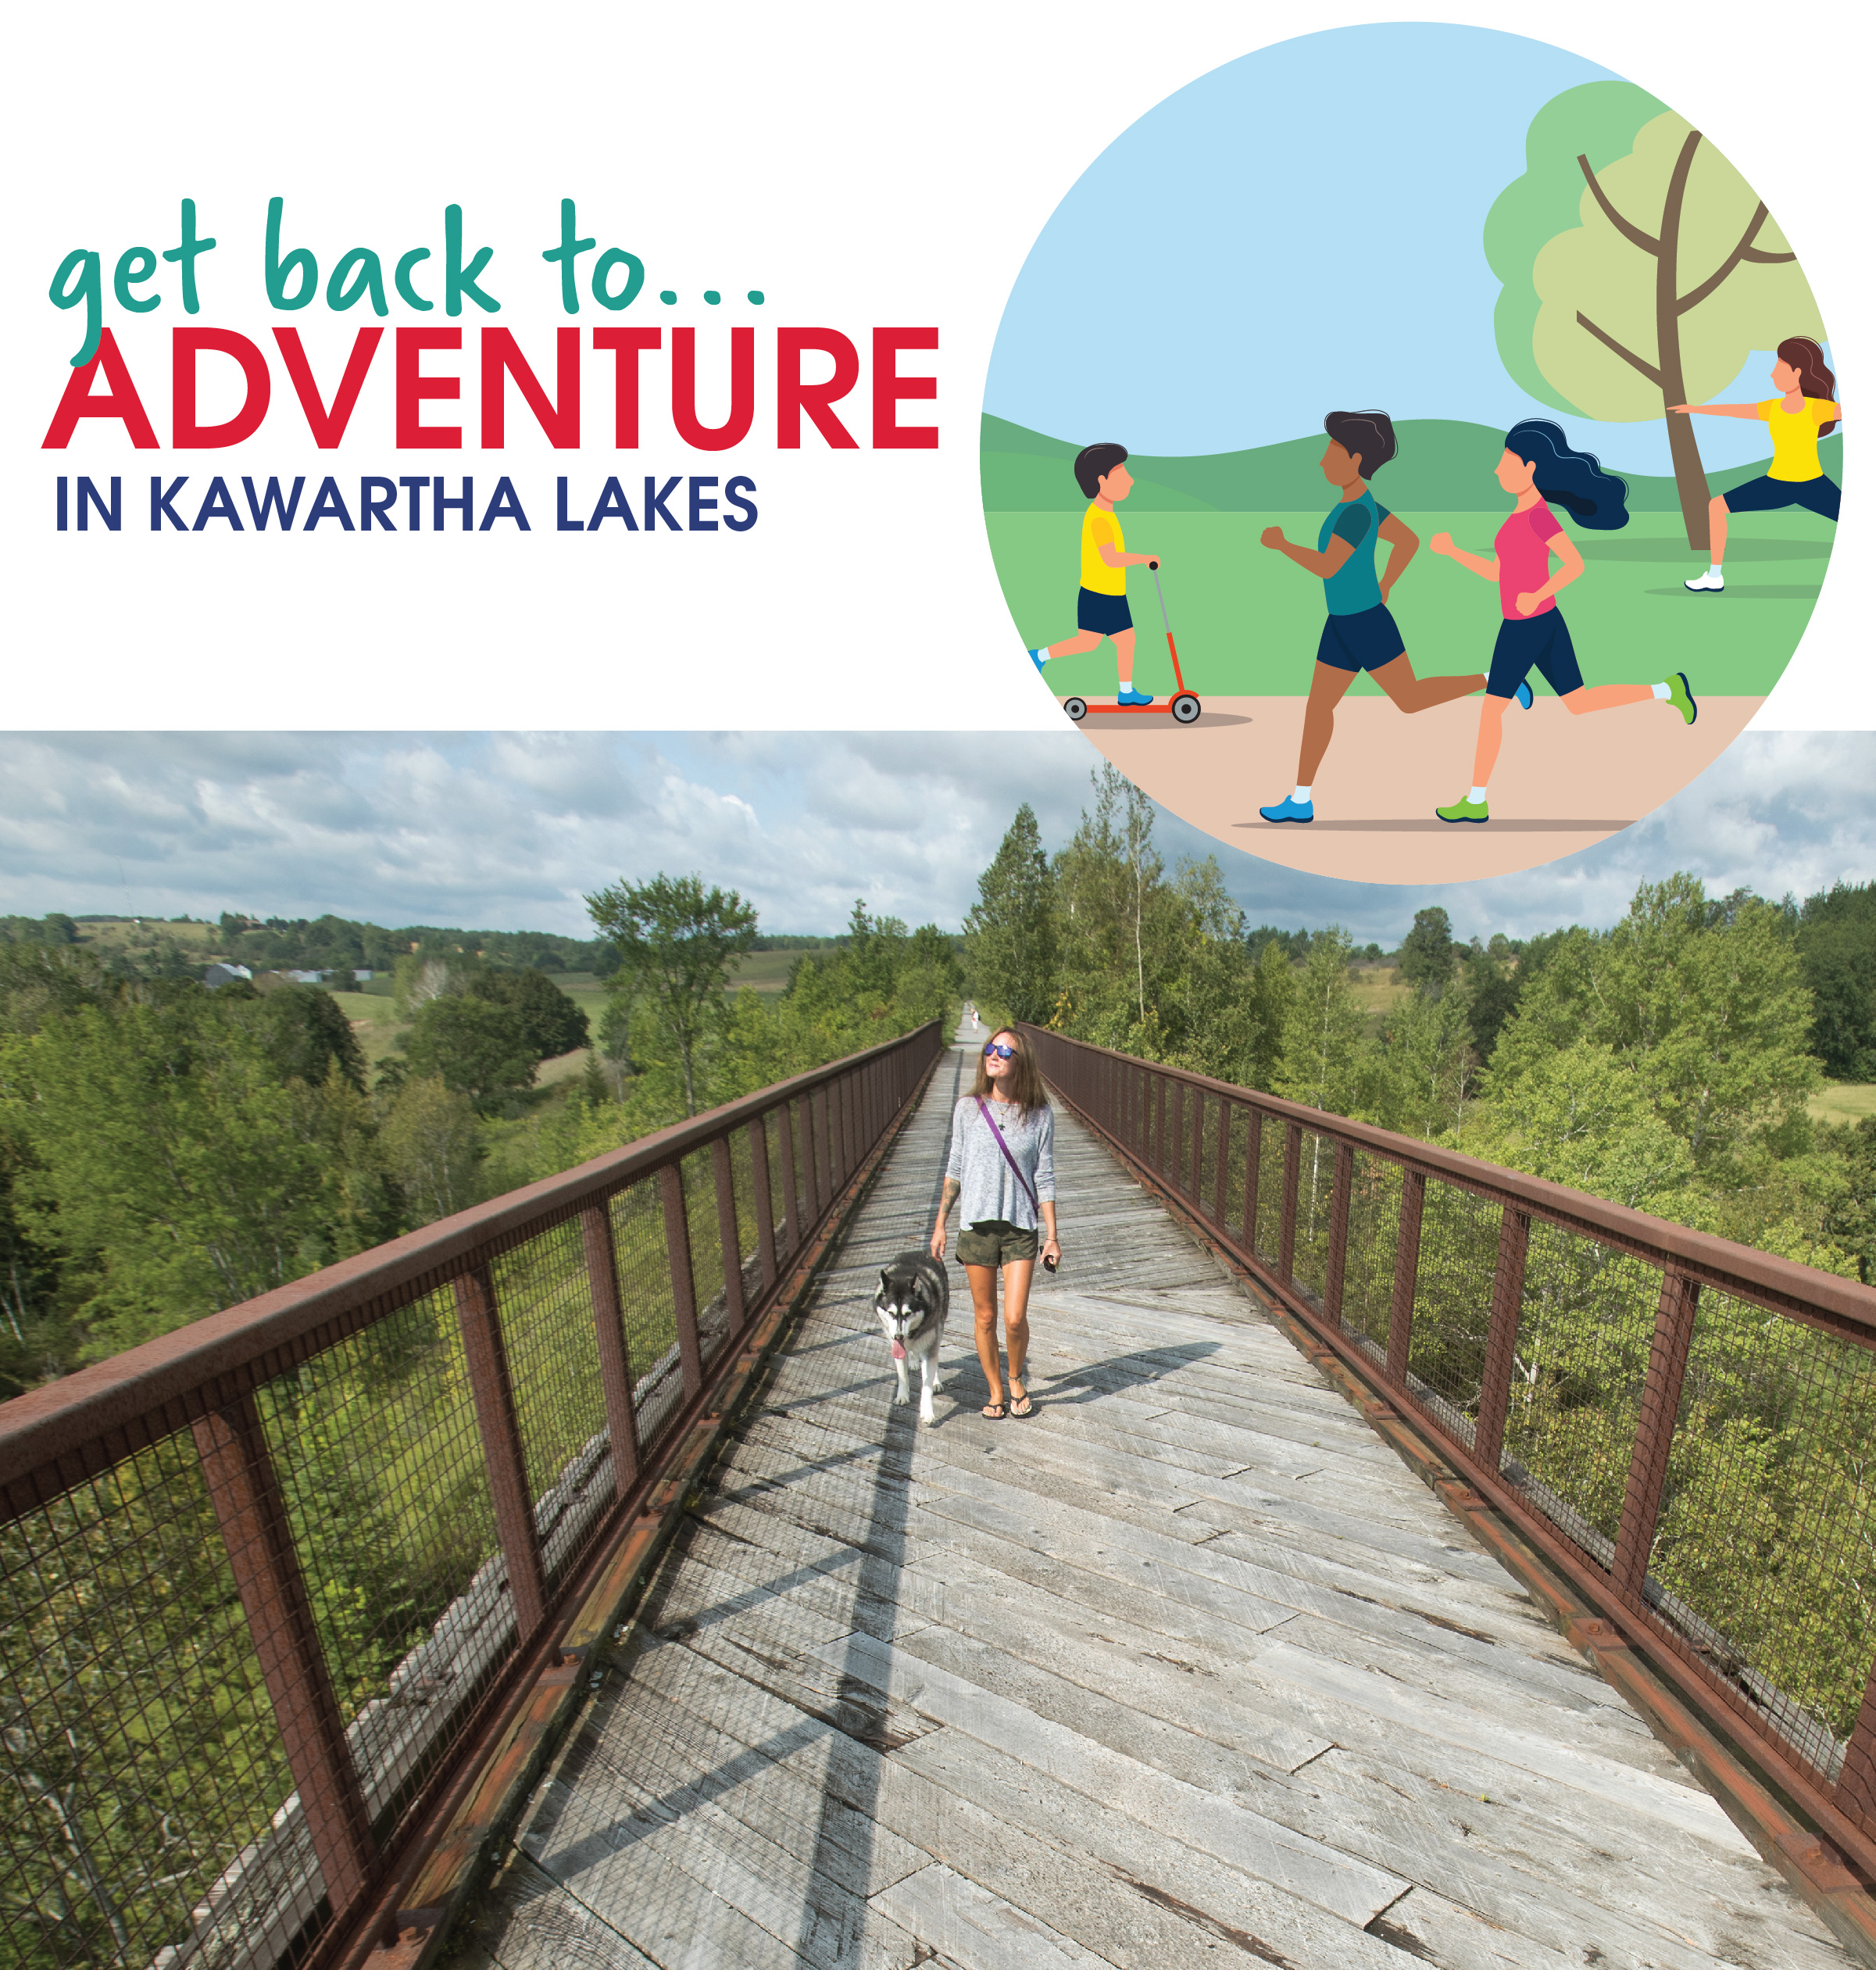 Get back to Adventure in Kawartha Lakes